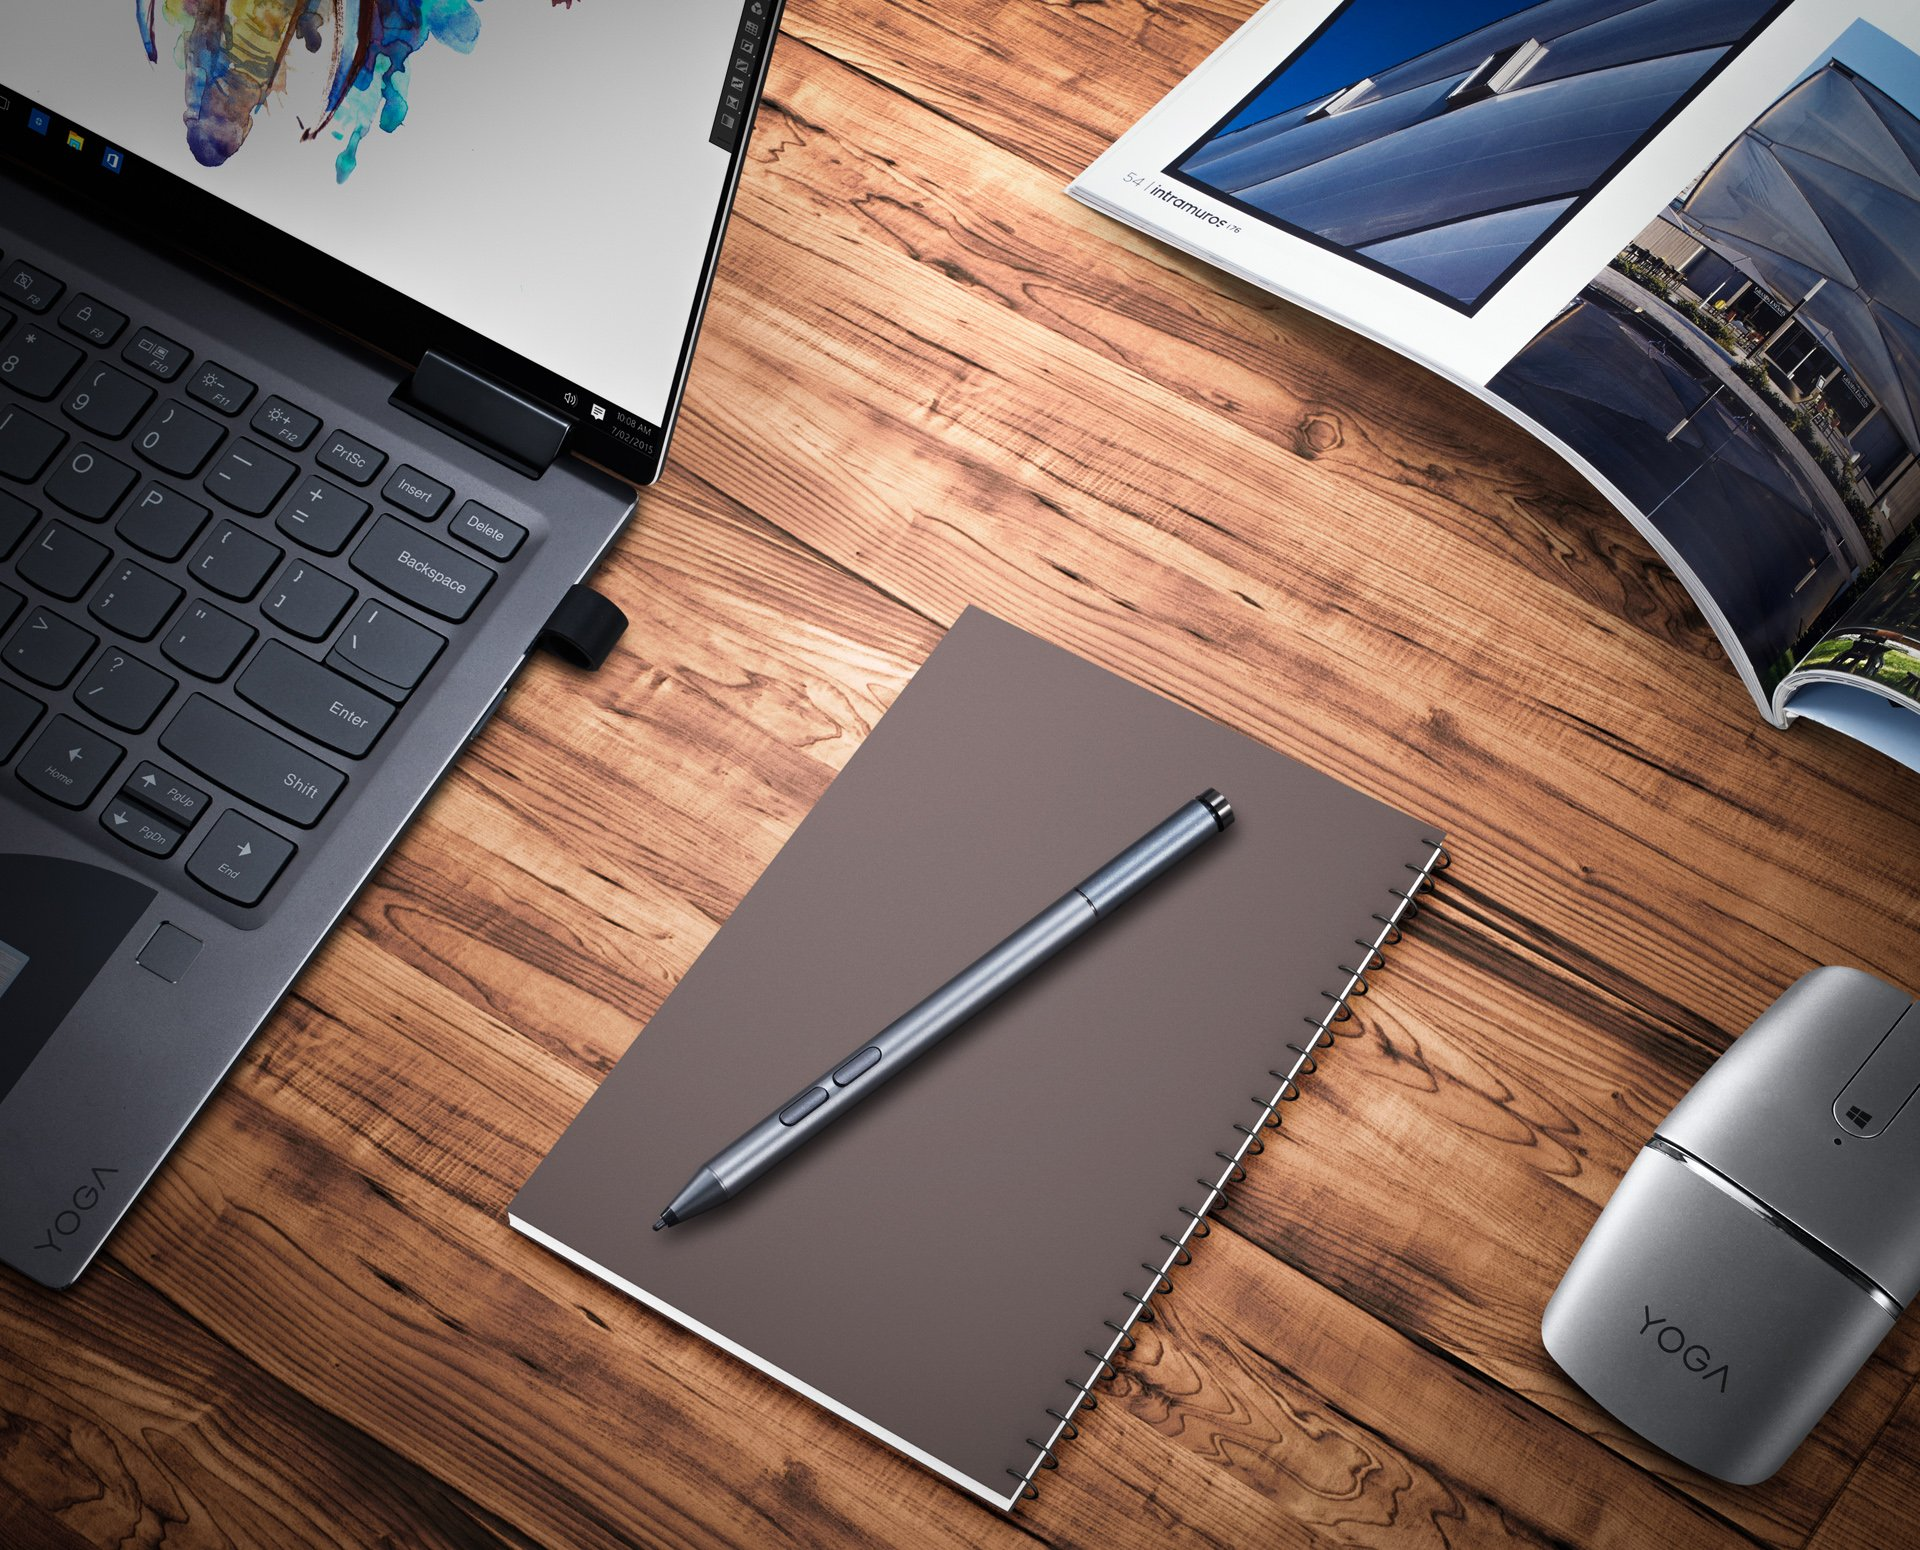 Lenovo Active Pen 2,up to 4096 Levels Pressure Sensitivity,BT connectivity,Paper Like Writing,Configurable buttons100% Tested Compatibility Yoga 920/730/720 Mix 720/510,GX80N07825 by Lenovo (Image #4)